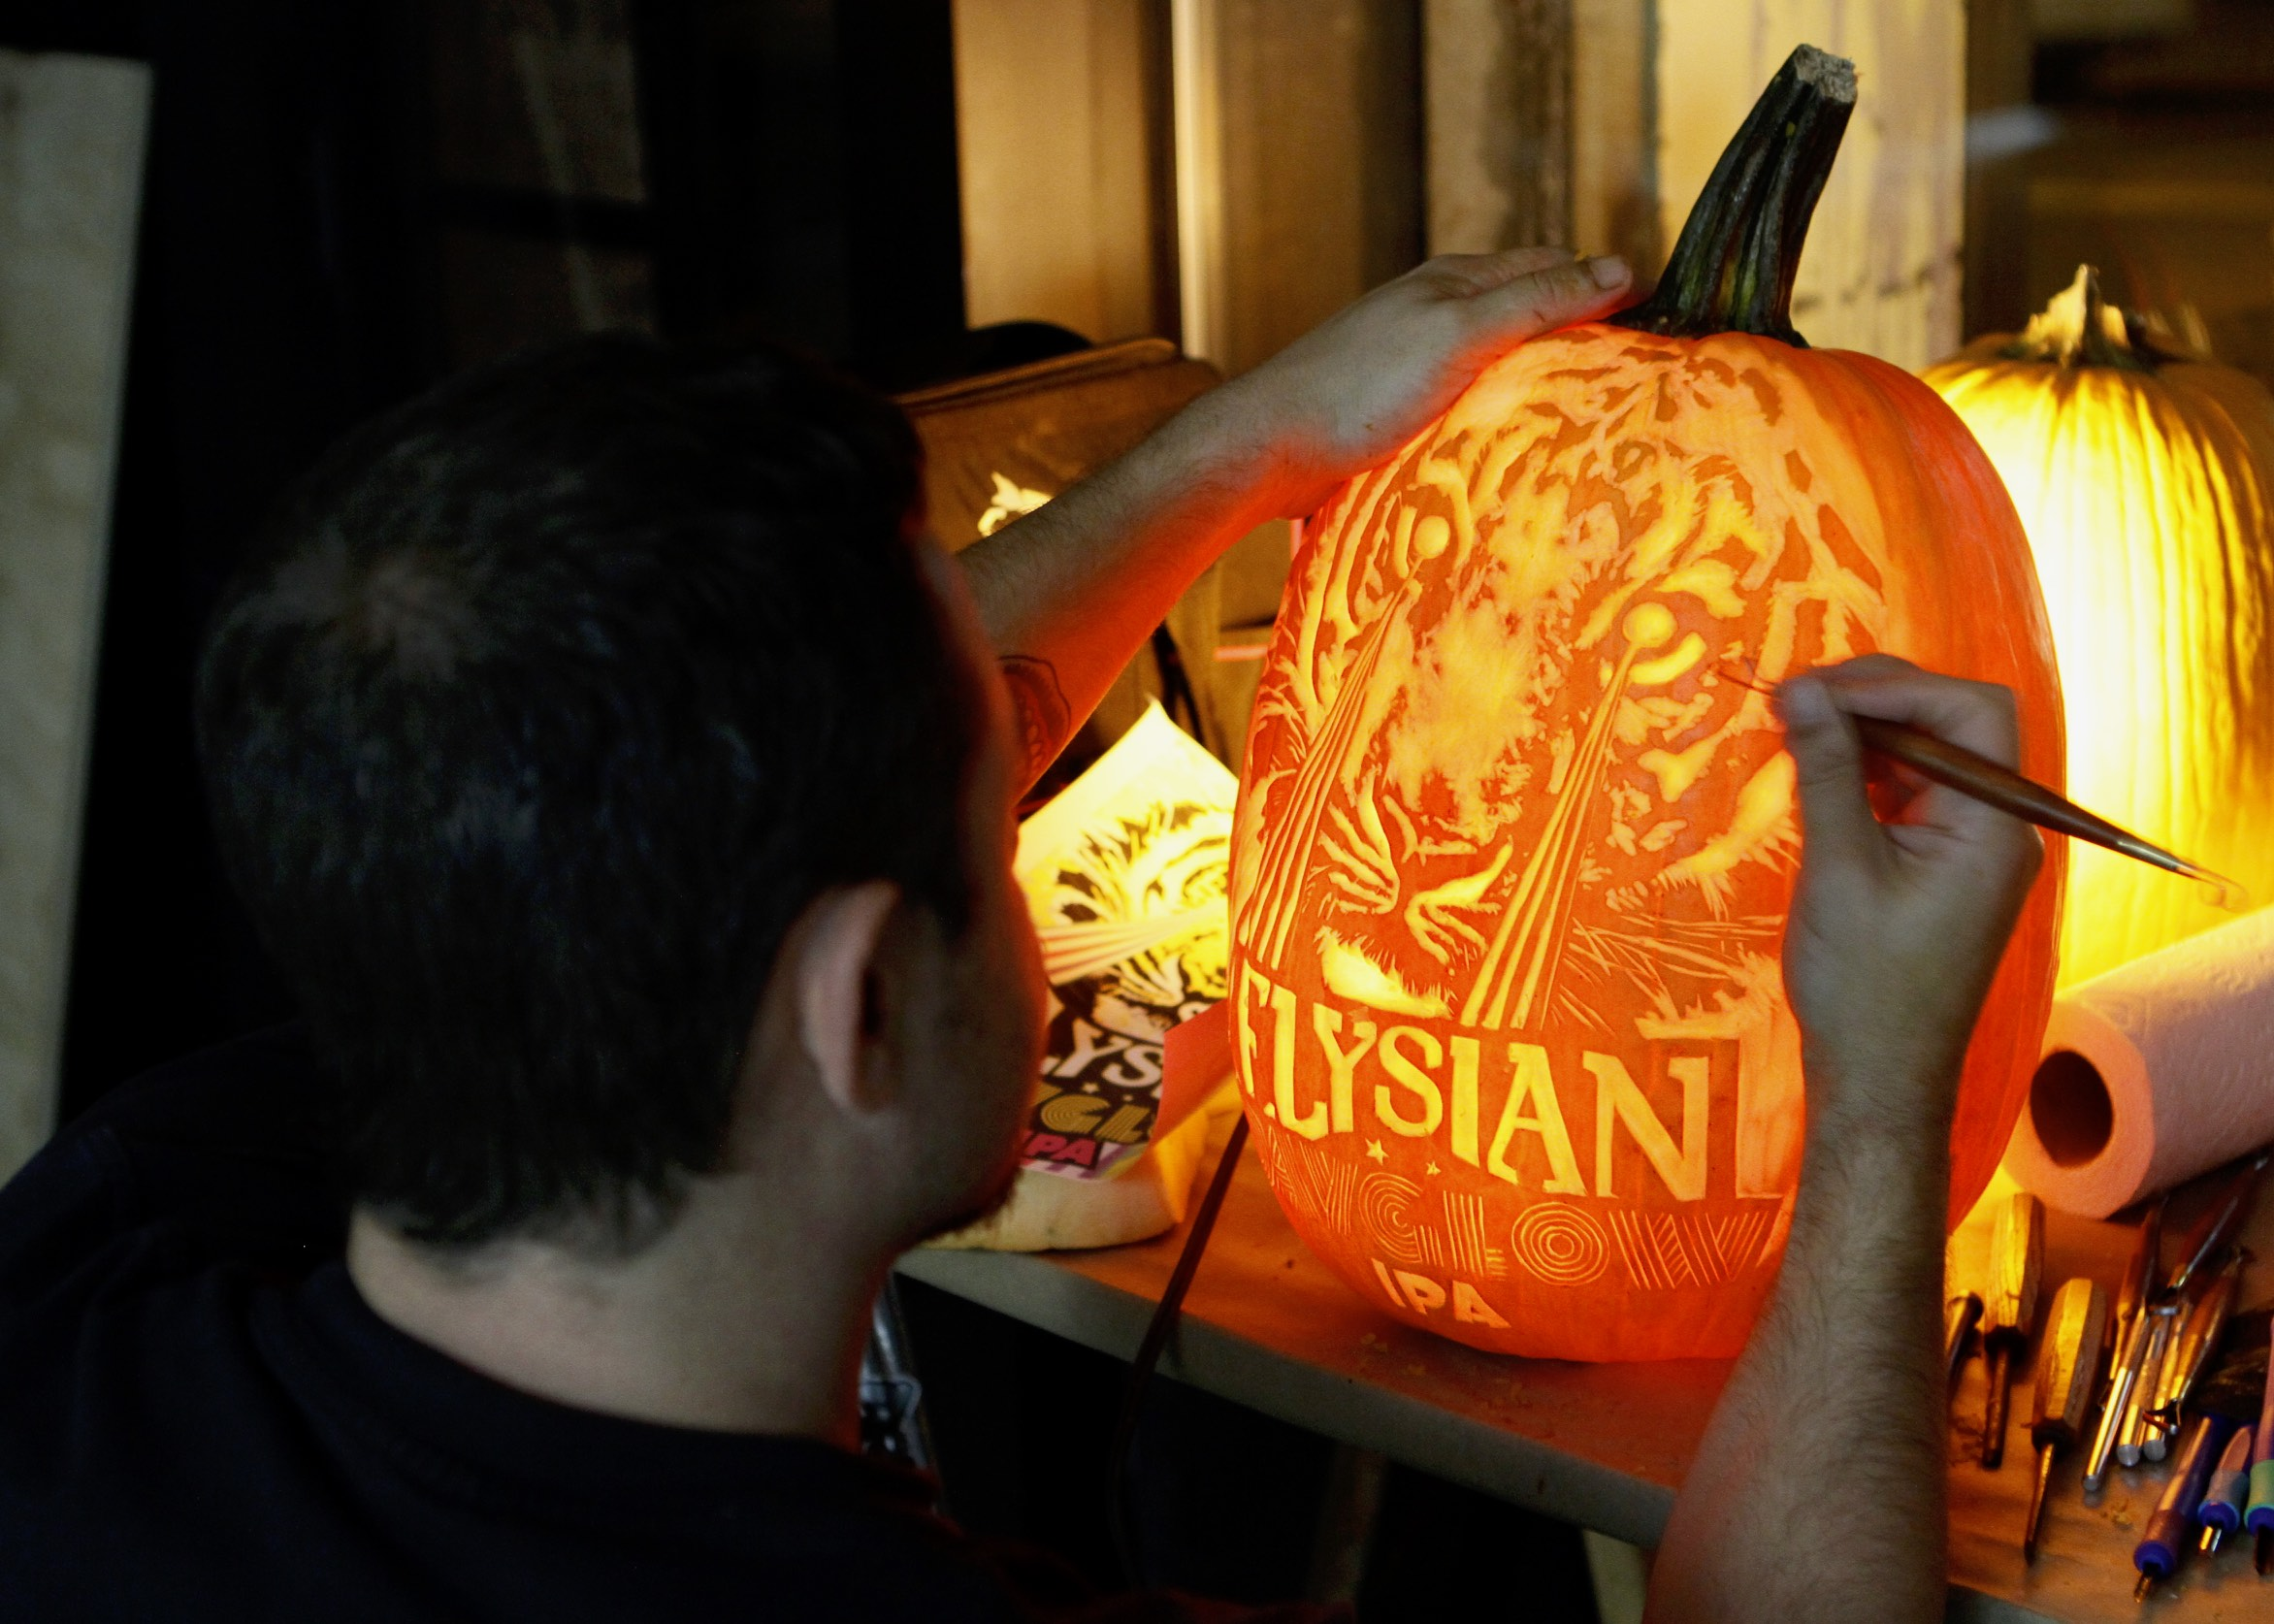 Ben carving an Xtra Large pumpkin with logo and label art for Elysian Brewing.